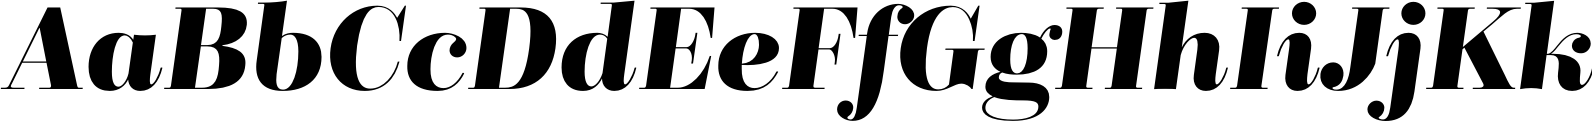 BridoneTitling DemiBold Italic